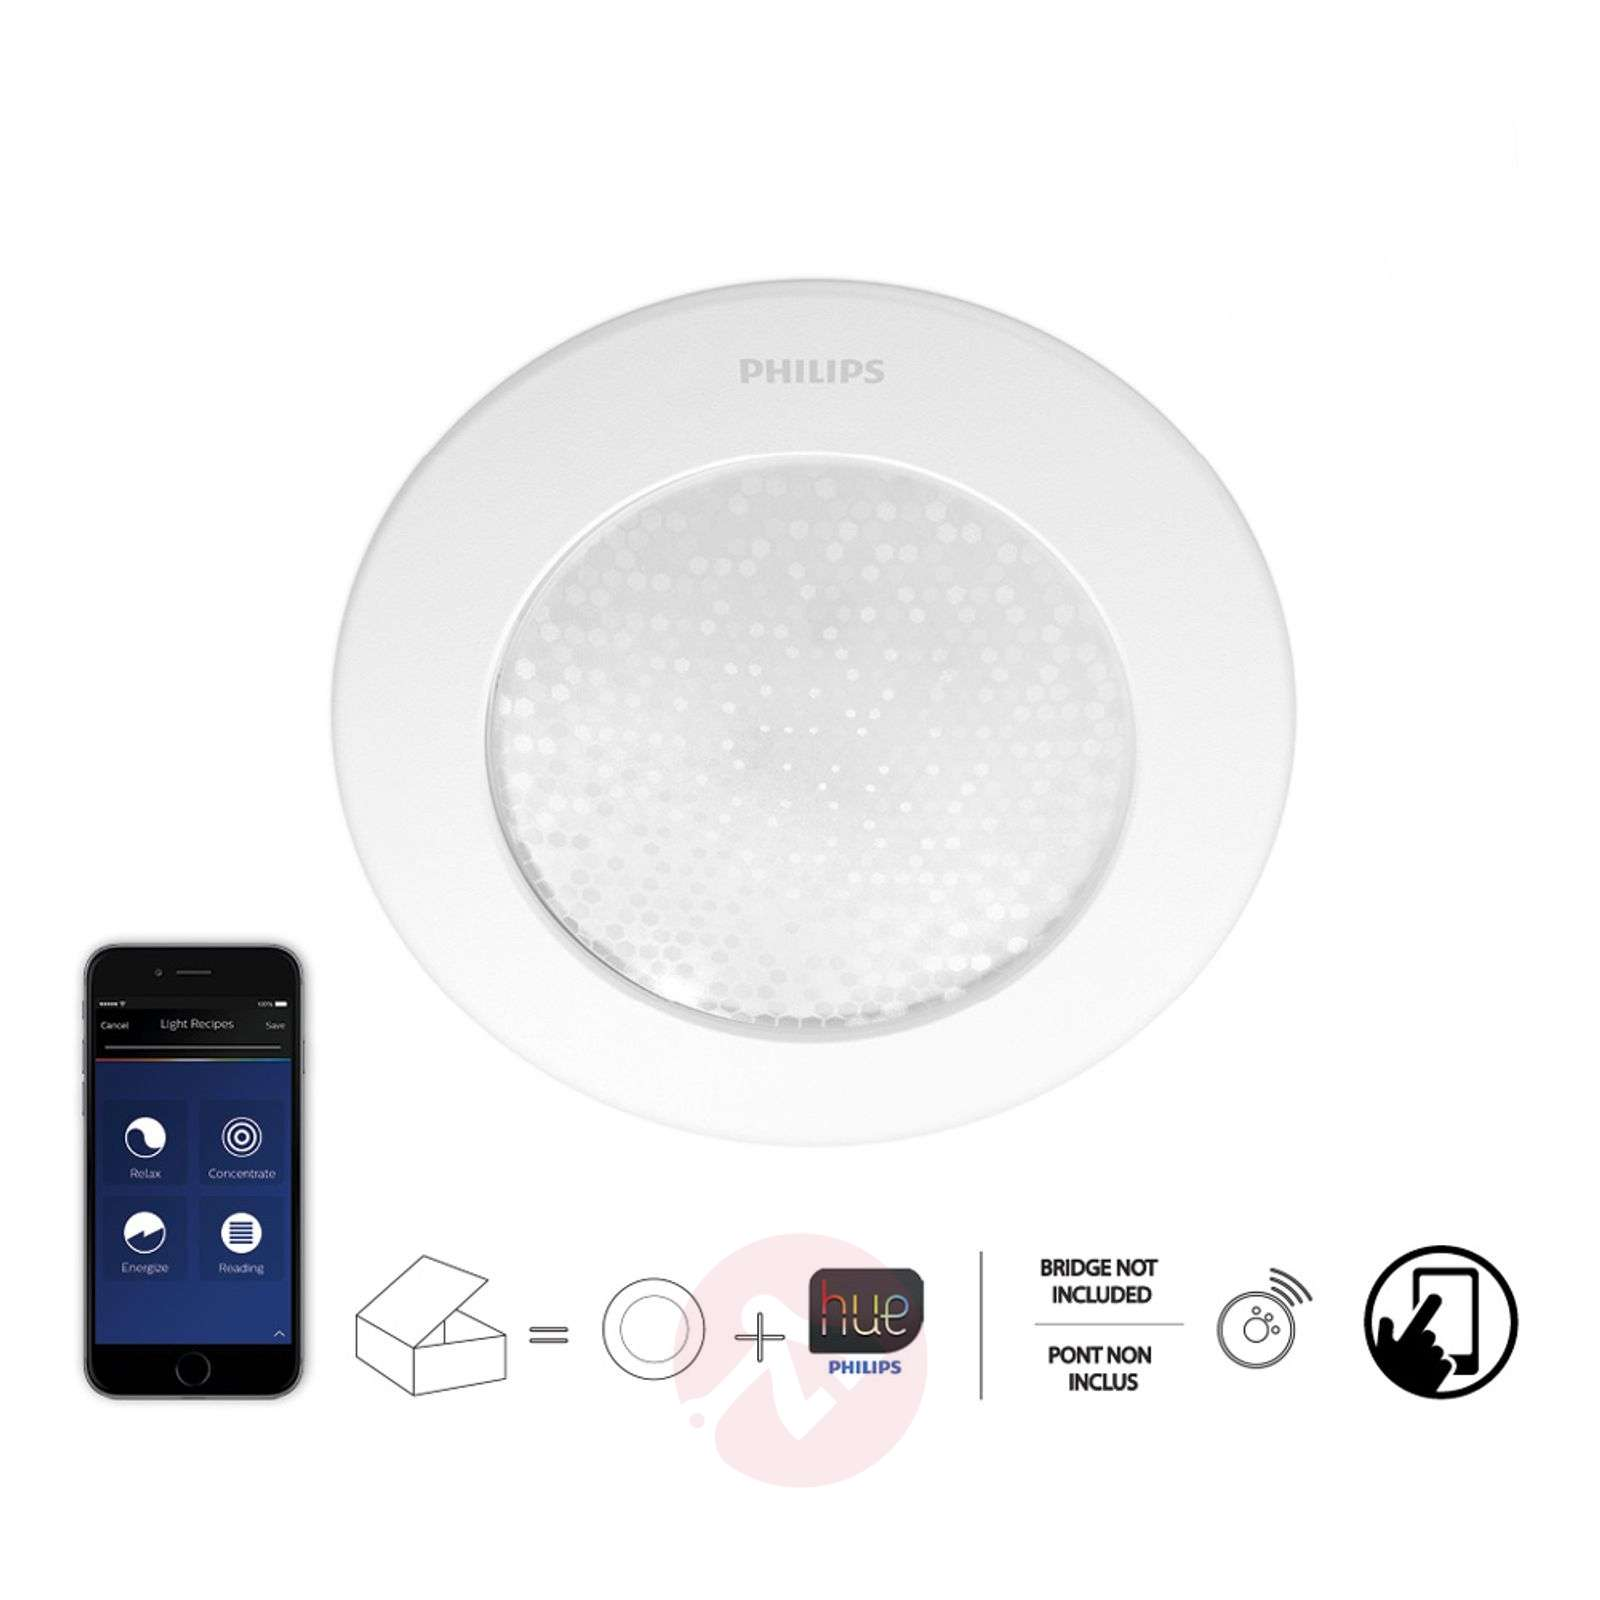 Philips Hue Phoenix LED downlight